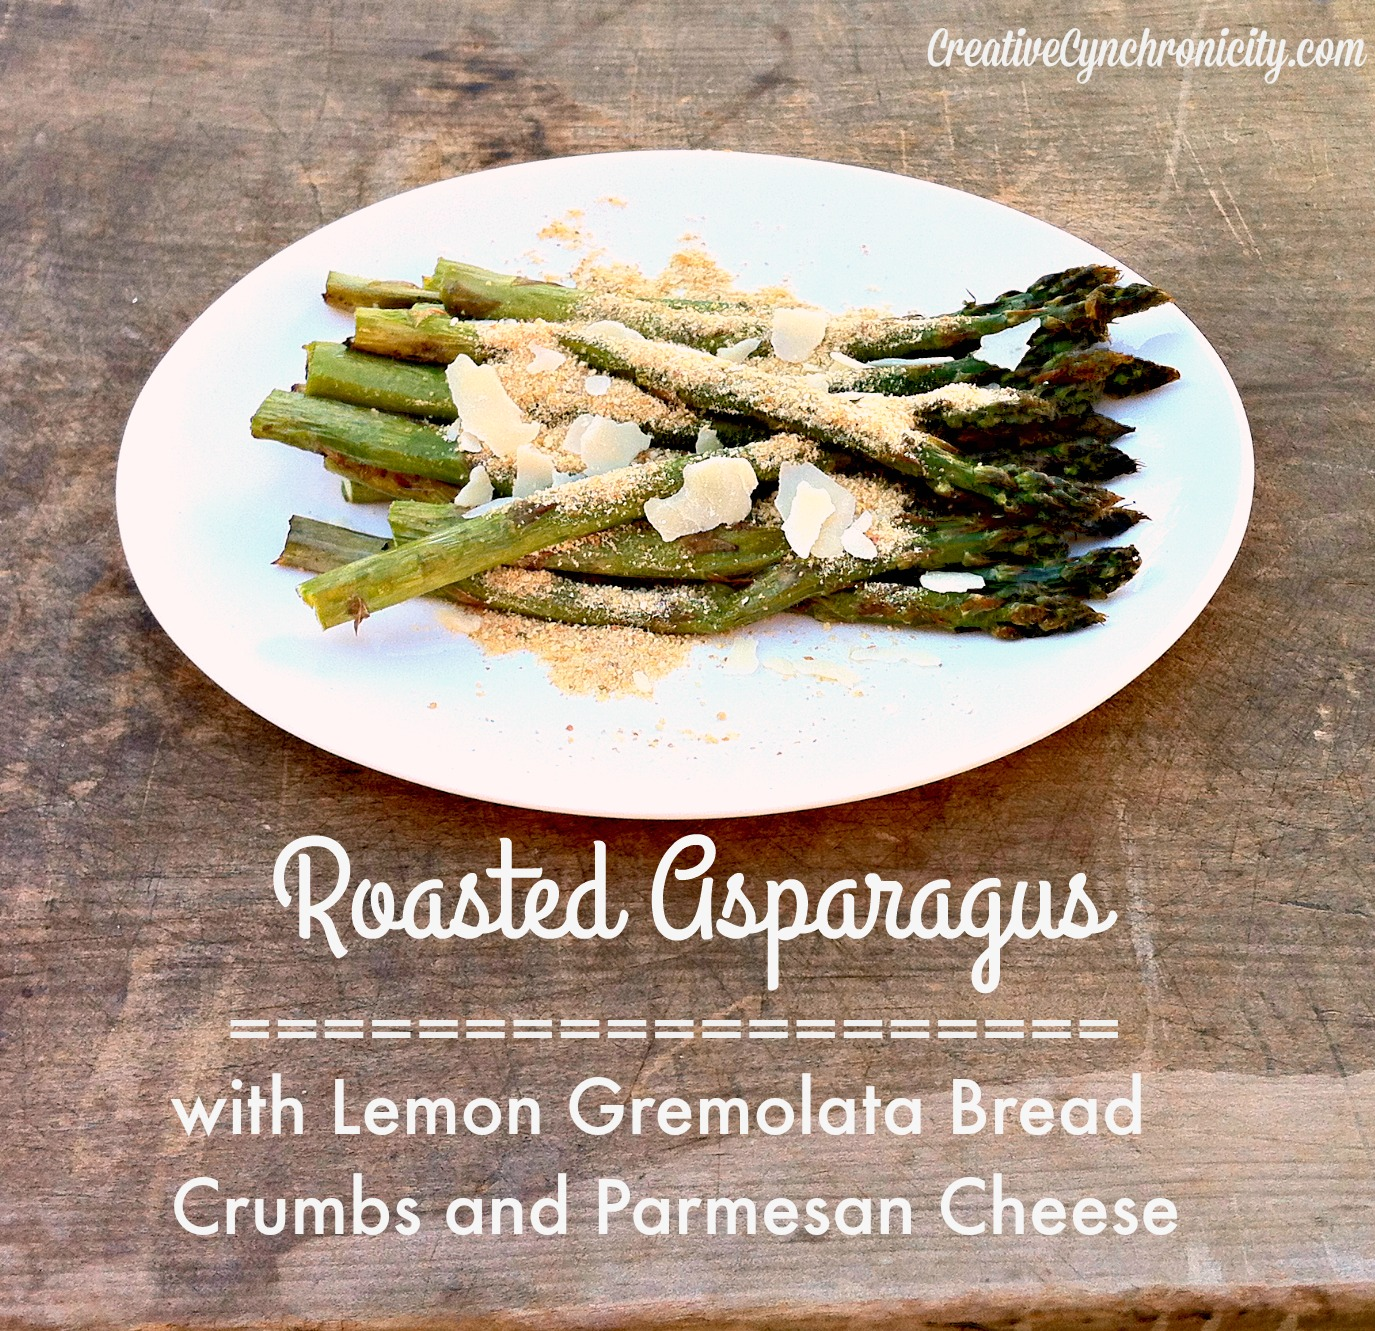 Roasted Asparagus with Lemon Gremolata Bread Crumbs and Parmesan Recipe